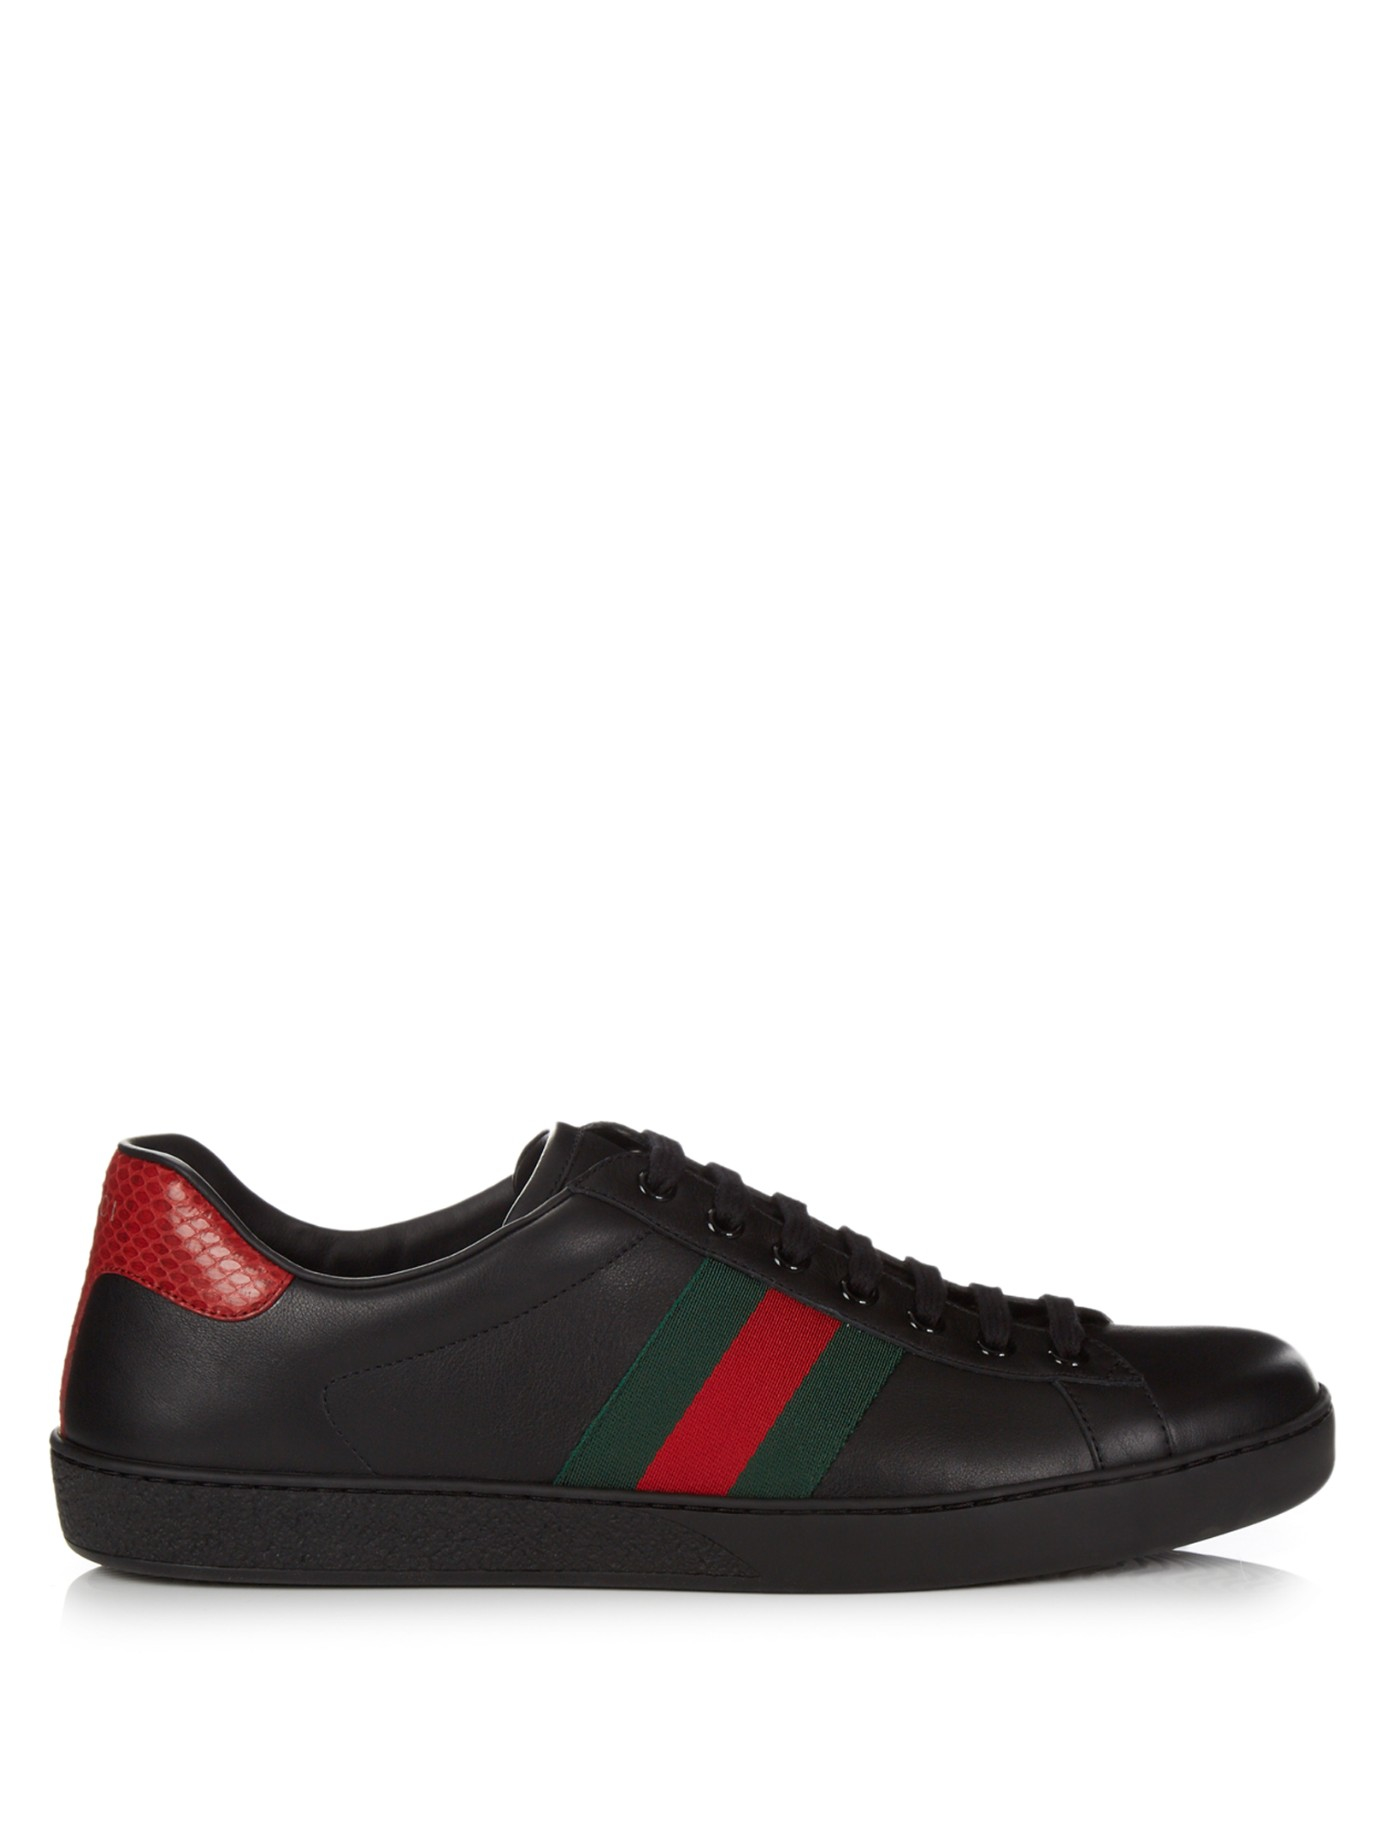 54fd3033d71 Lyst - Gucci Ace Low-top Leather Trainers in Black for Men